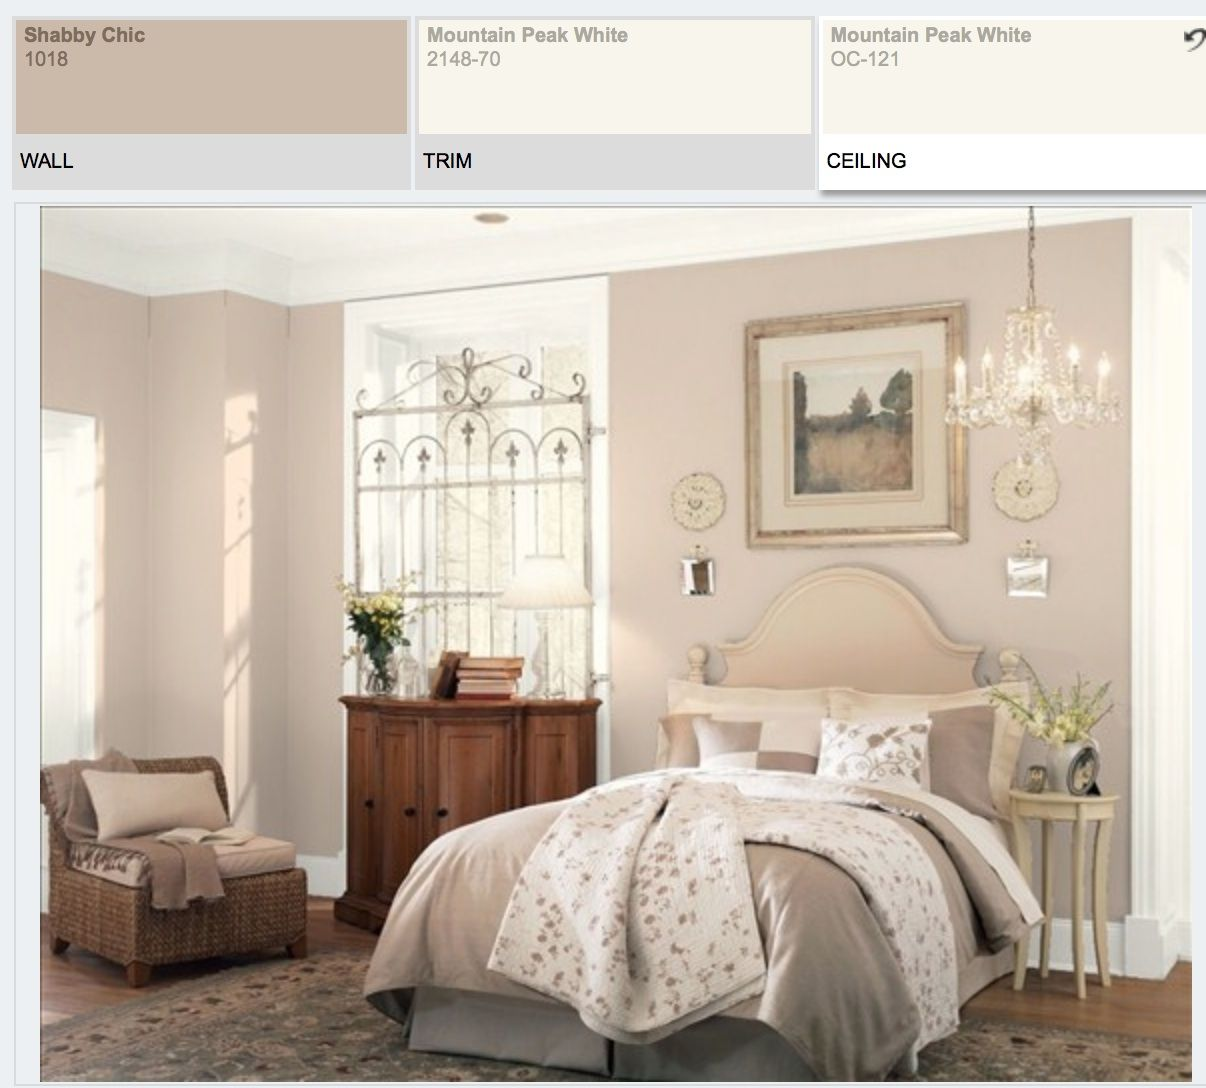 Shabby Chic Bedroom Paint Colors Little Girls Bedroom Ideas Vintage Taylor Swift Bedroom Decorating Ideas Before And After Small Bedroom Makeovers: 2015-2016 Remodel And Design In 2019